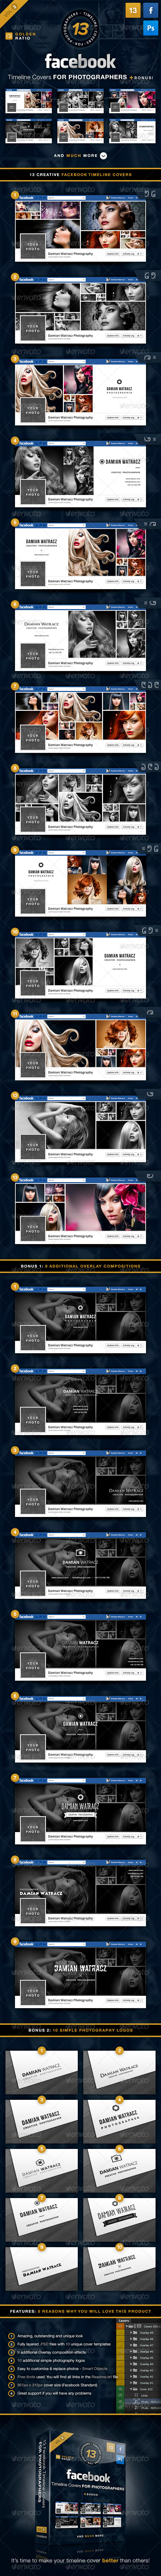 GraphicRiver Facebook Timeline Covers For Photographers Vol 3 5889062